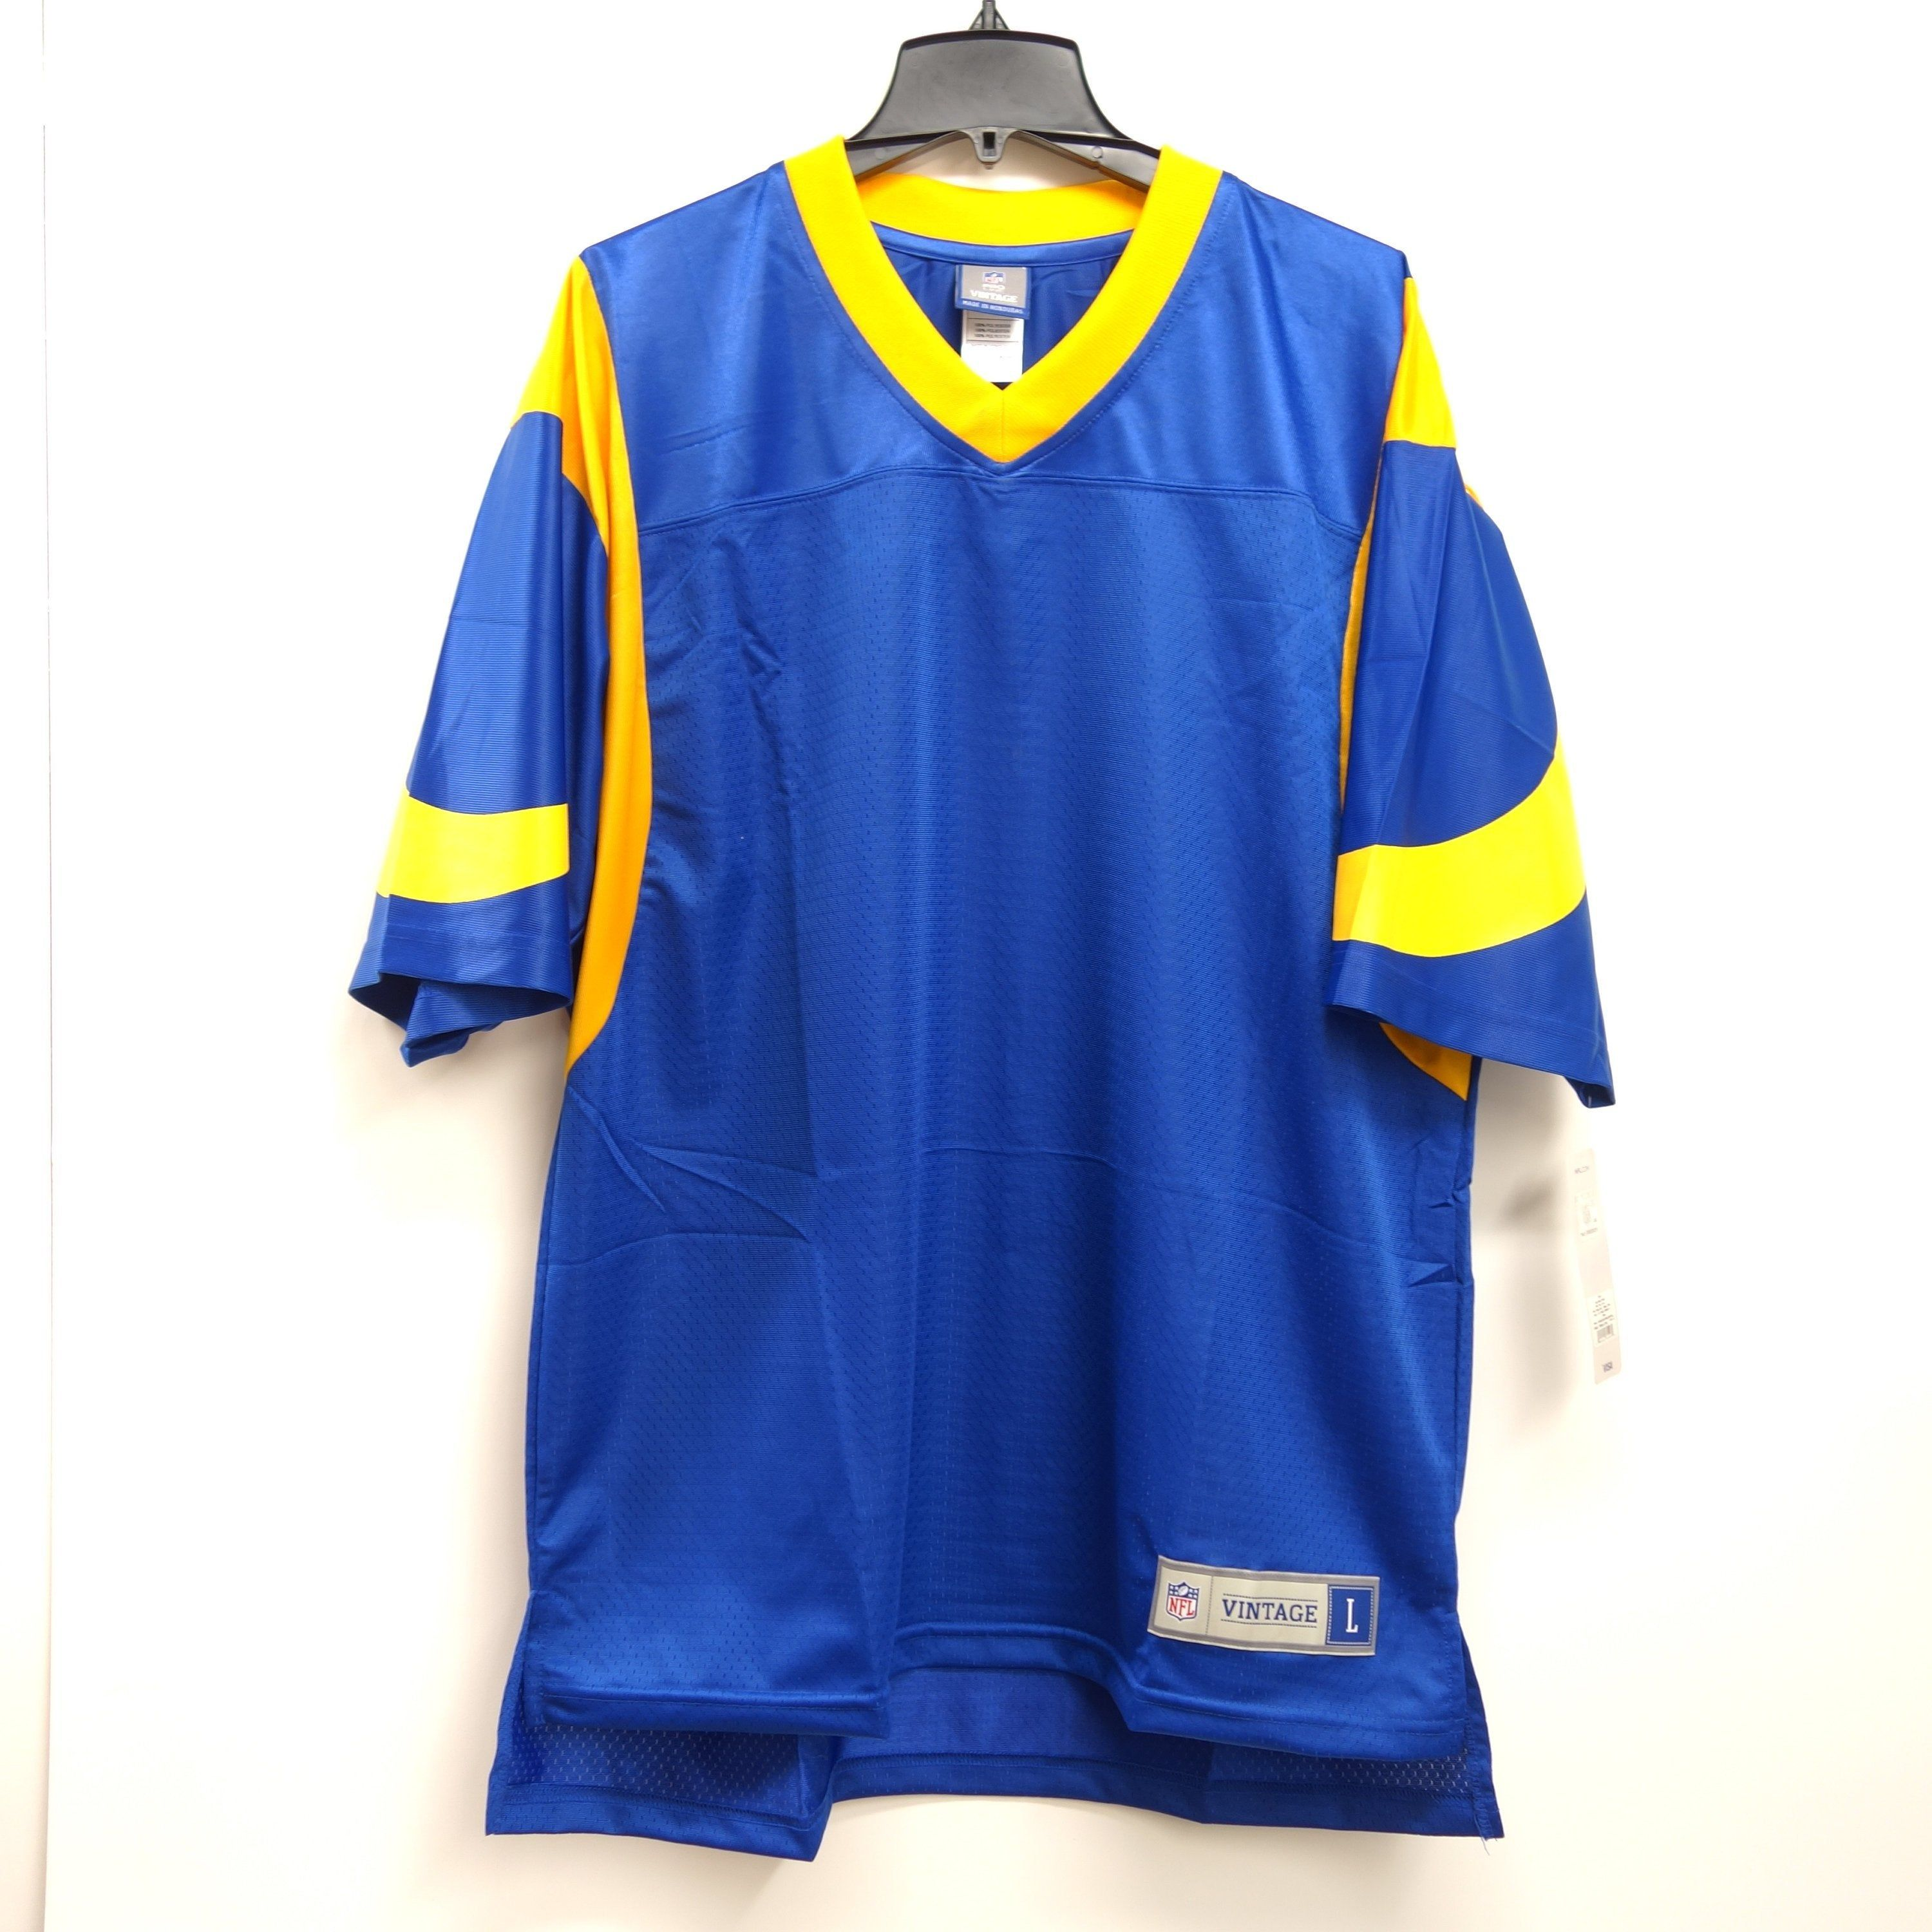 Nfl Vintage Mens Size Xl Los Angeles Rams Retro Replica Vintage Blank Personalized Throwback 80 S Jersey Eric Dickerson Nfl Vintage Sports